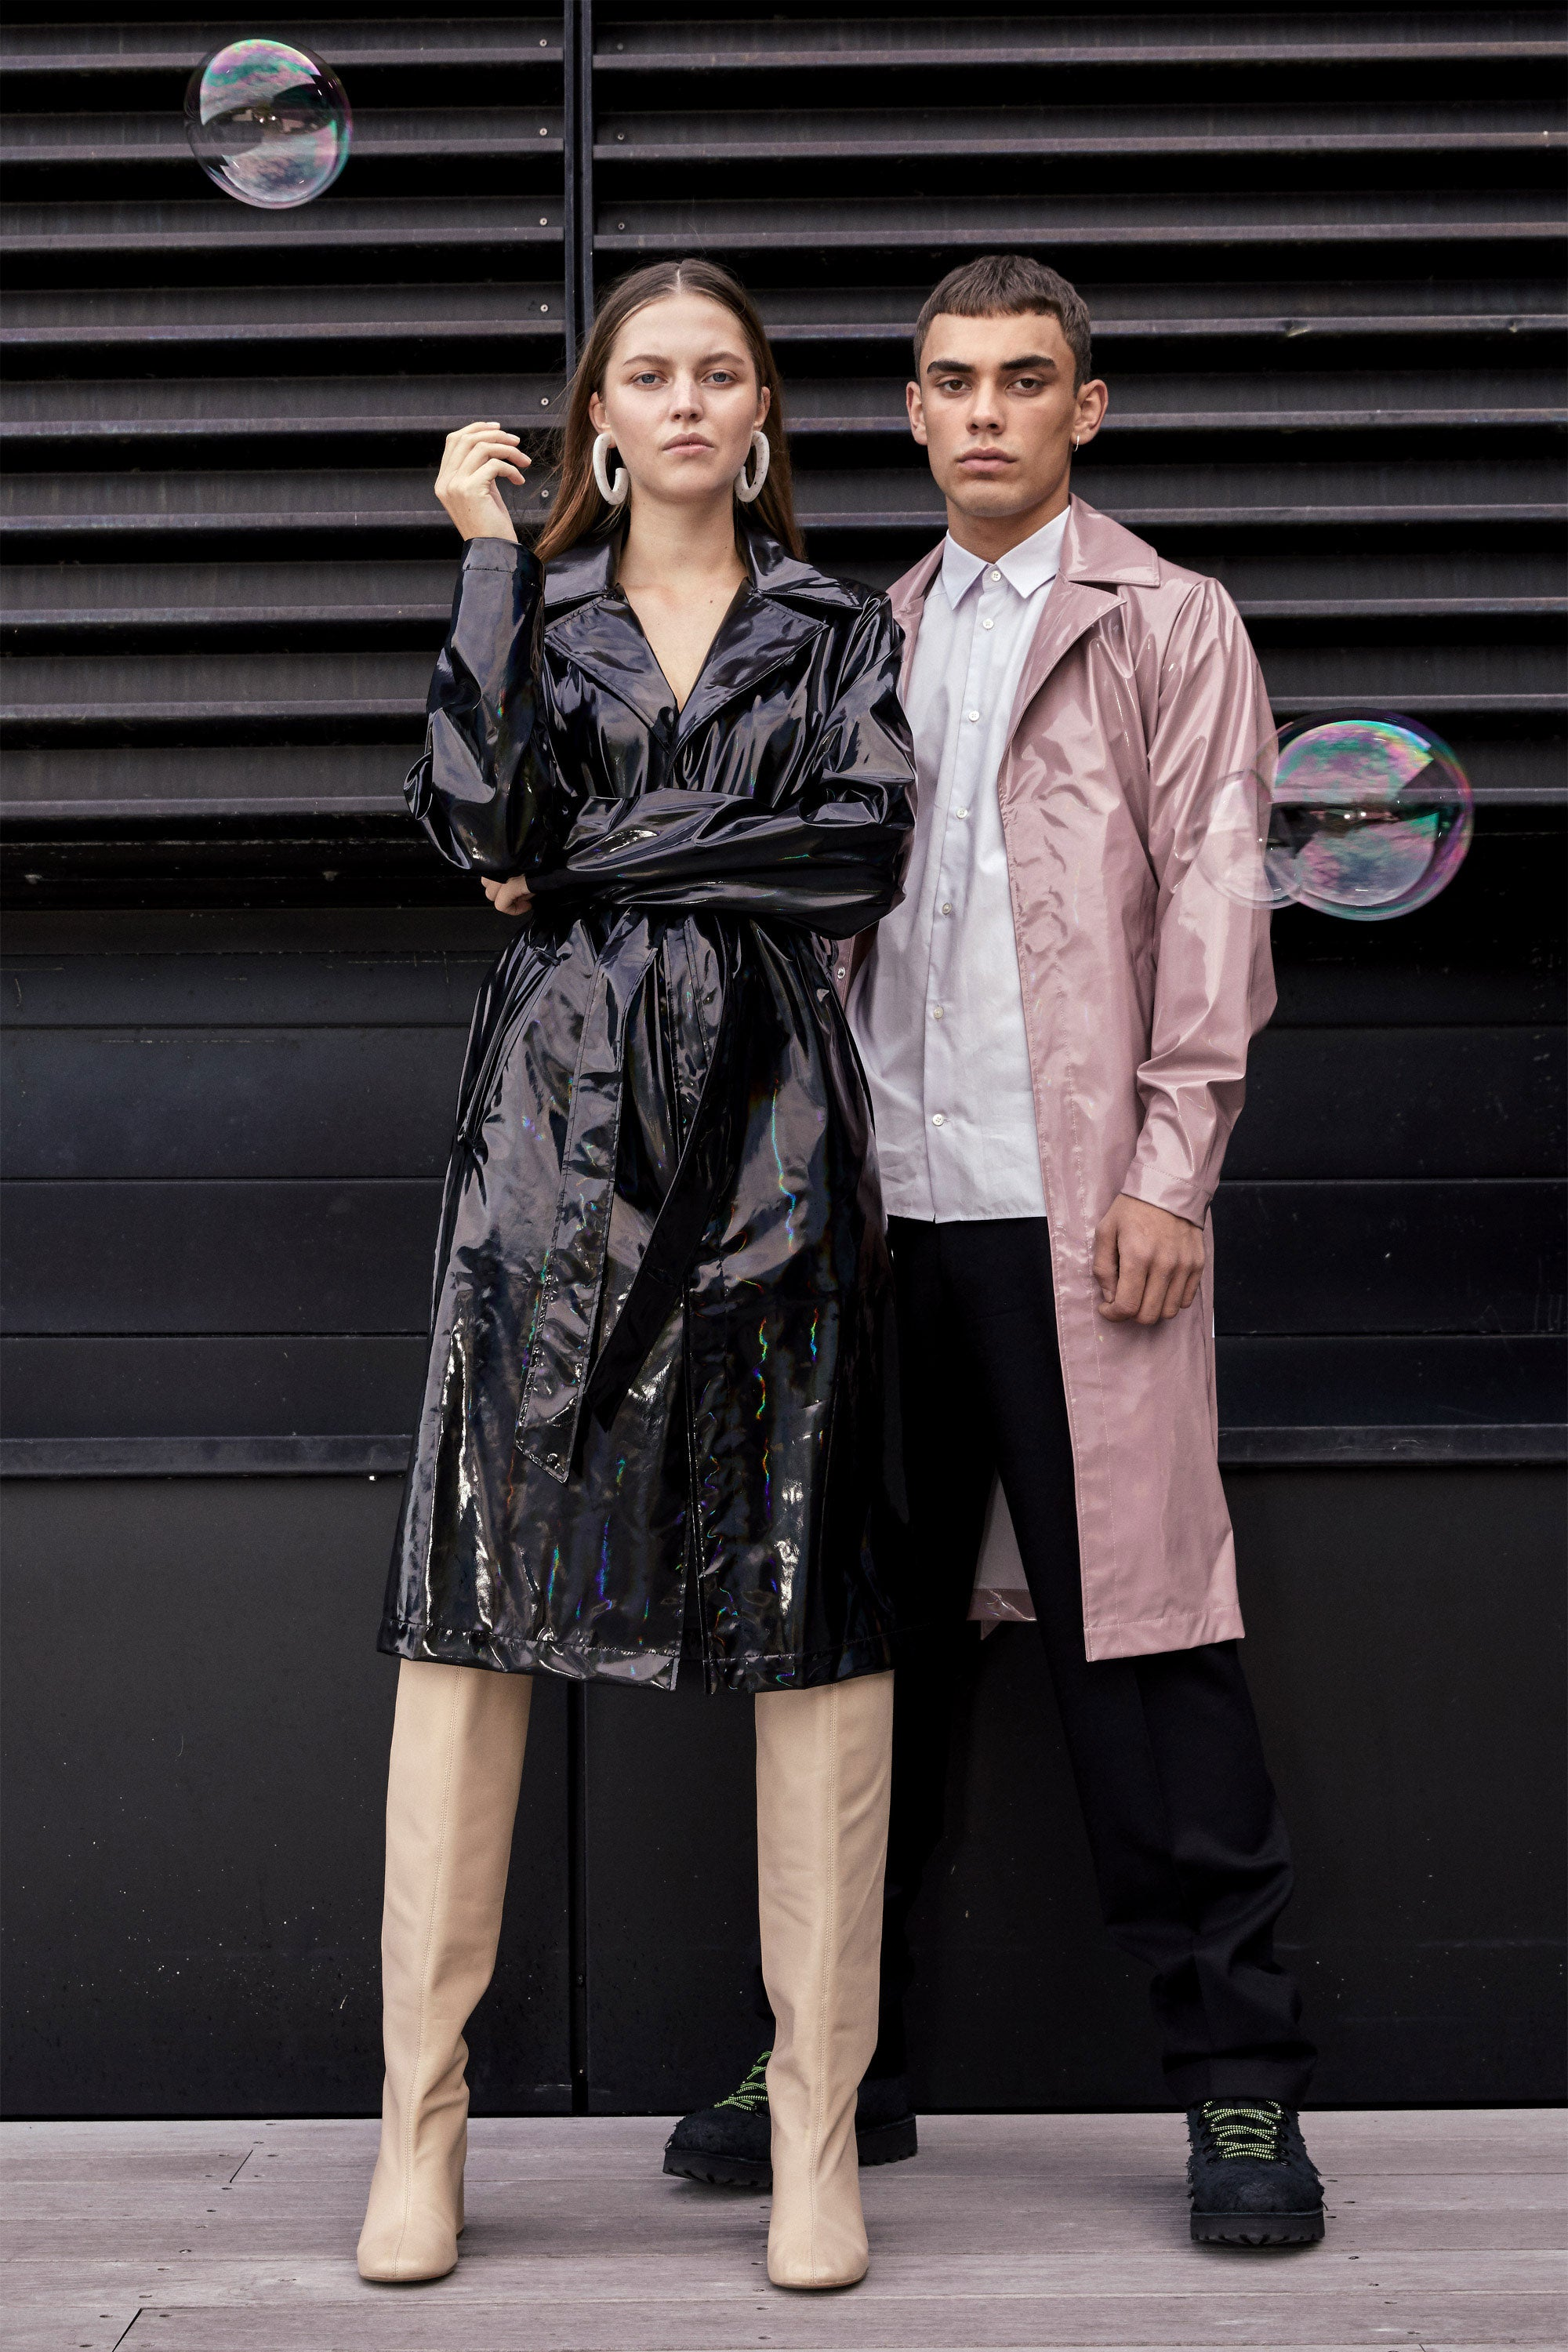 Rains SS19 Holographic Campaign Imagery